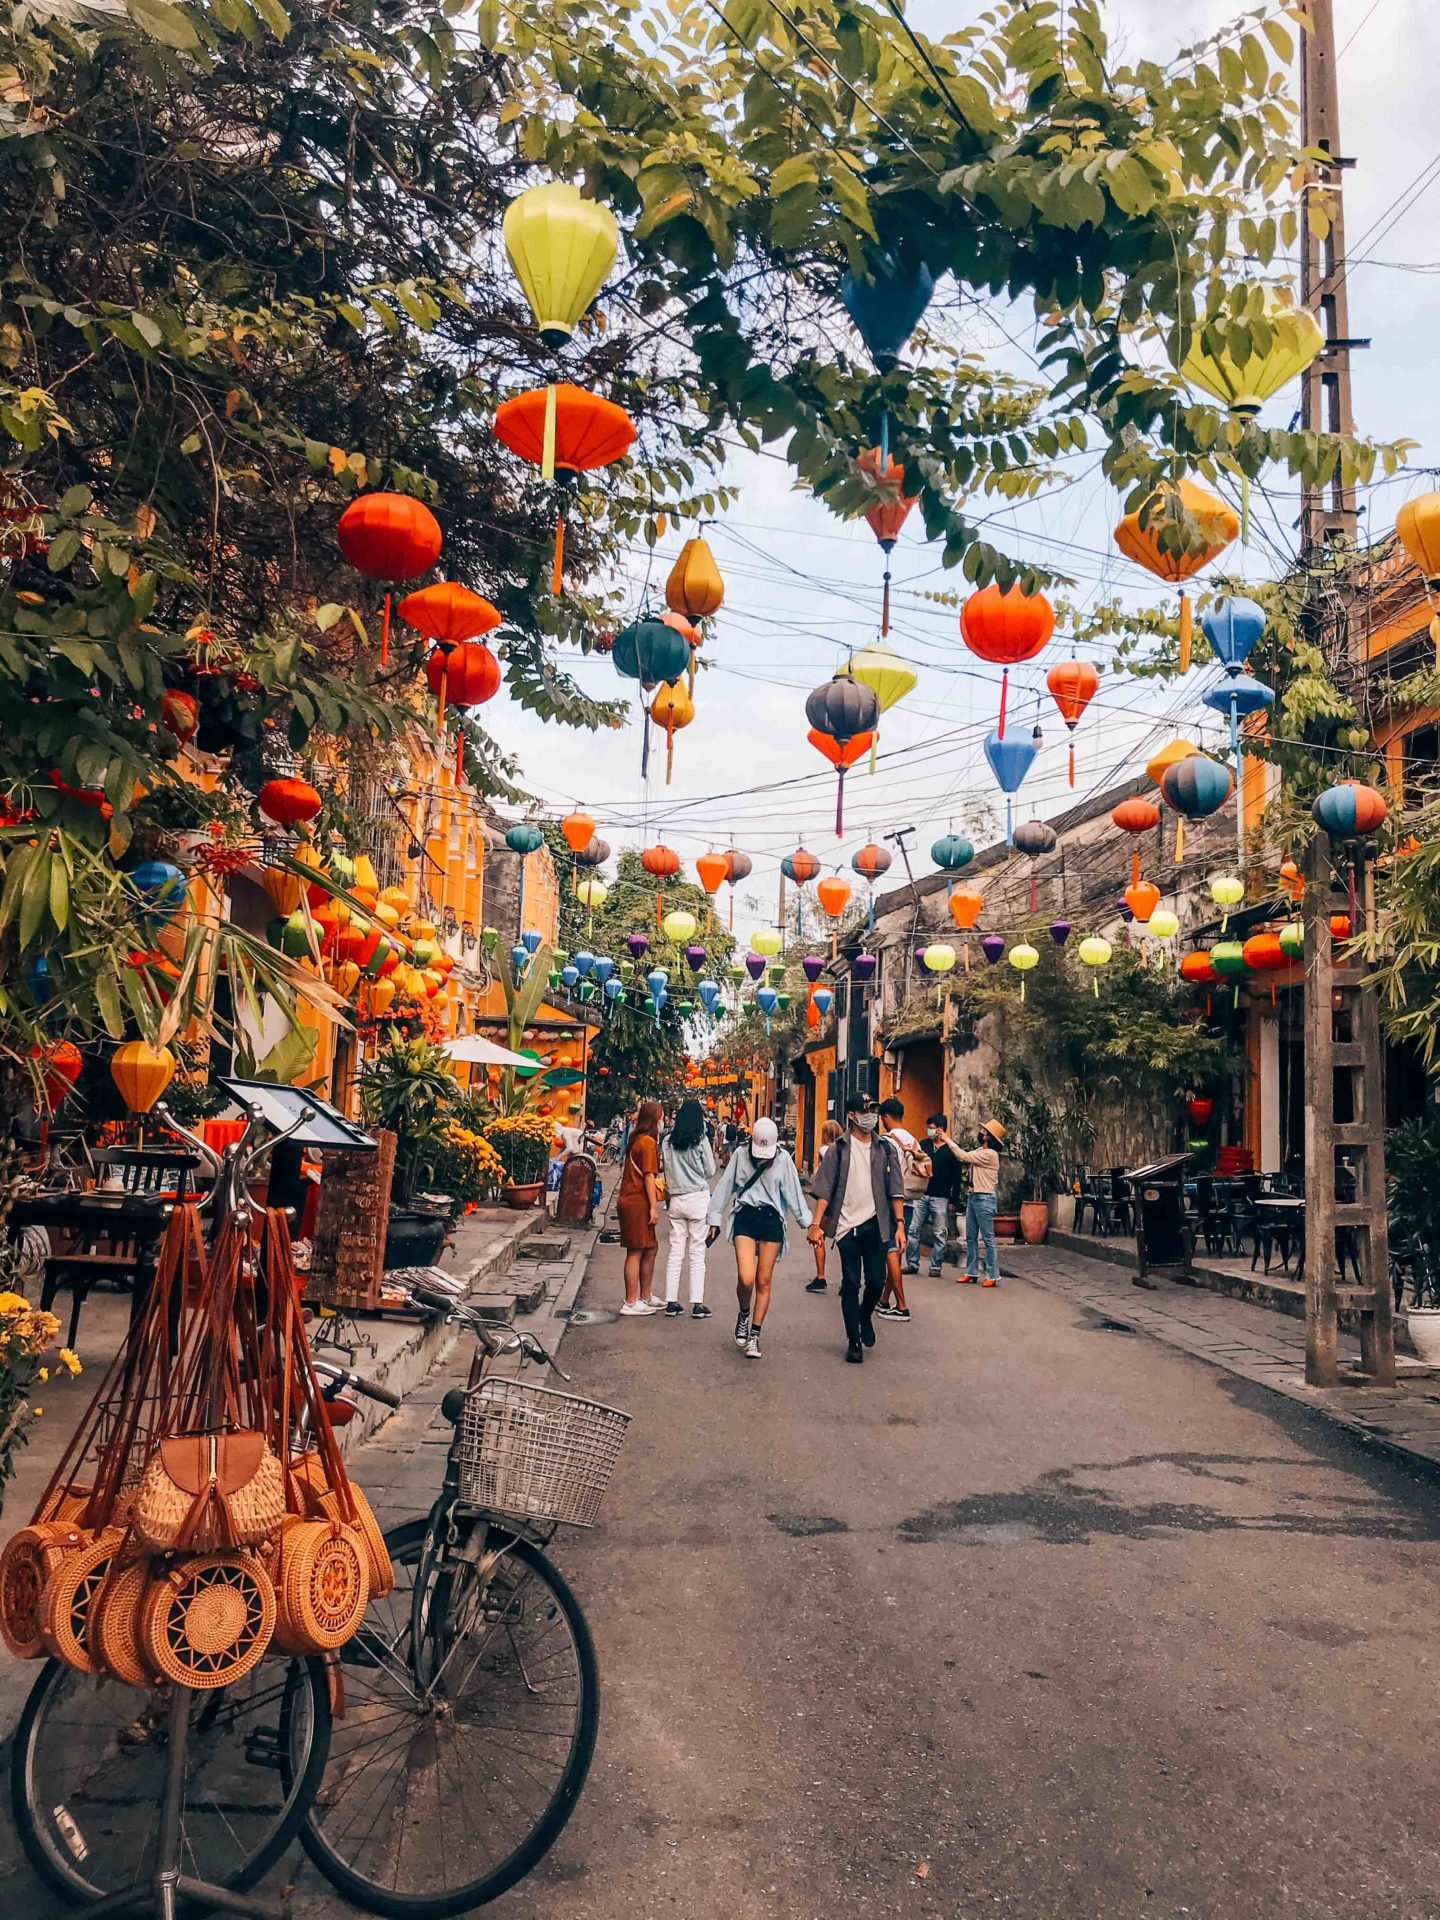 Colorful picturesque streets with lanterns in Hoi An, Vietnam